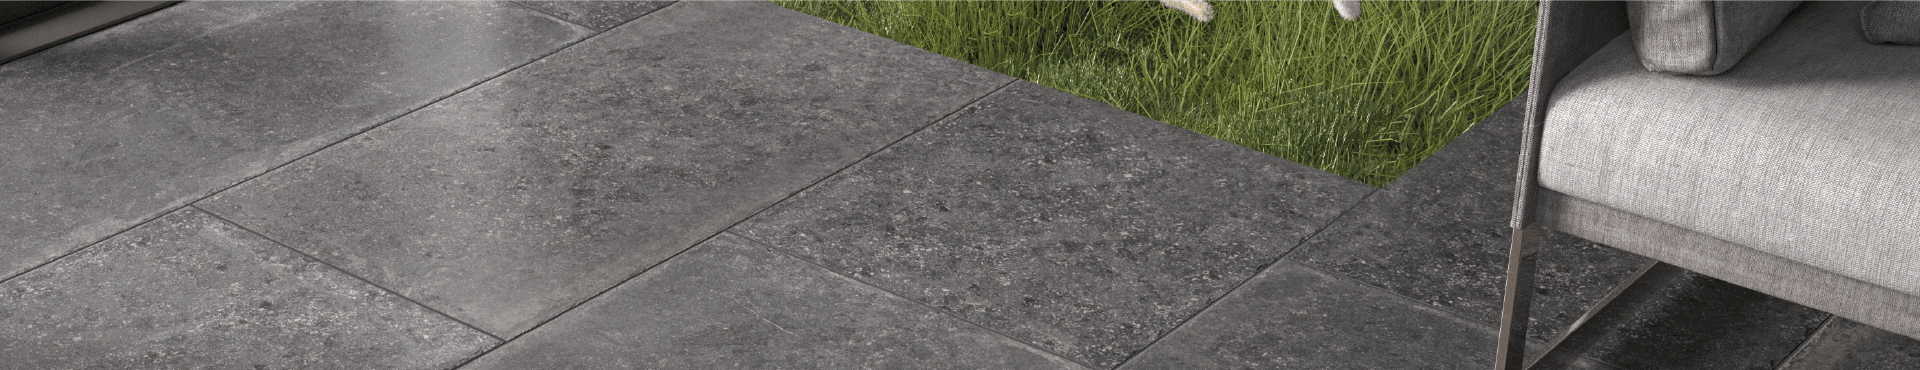 approved suppliers of global stone, brett paving and stone plus uk <br/>*samples available on request